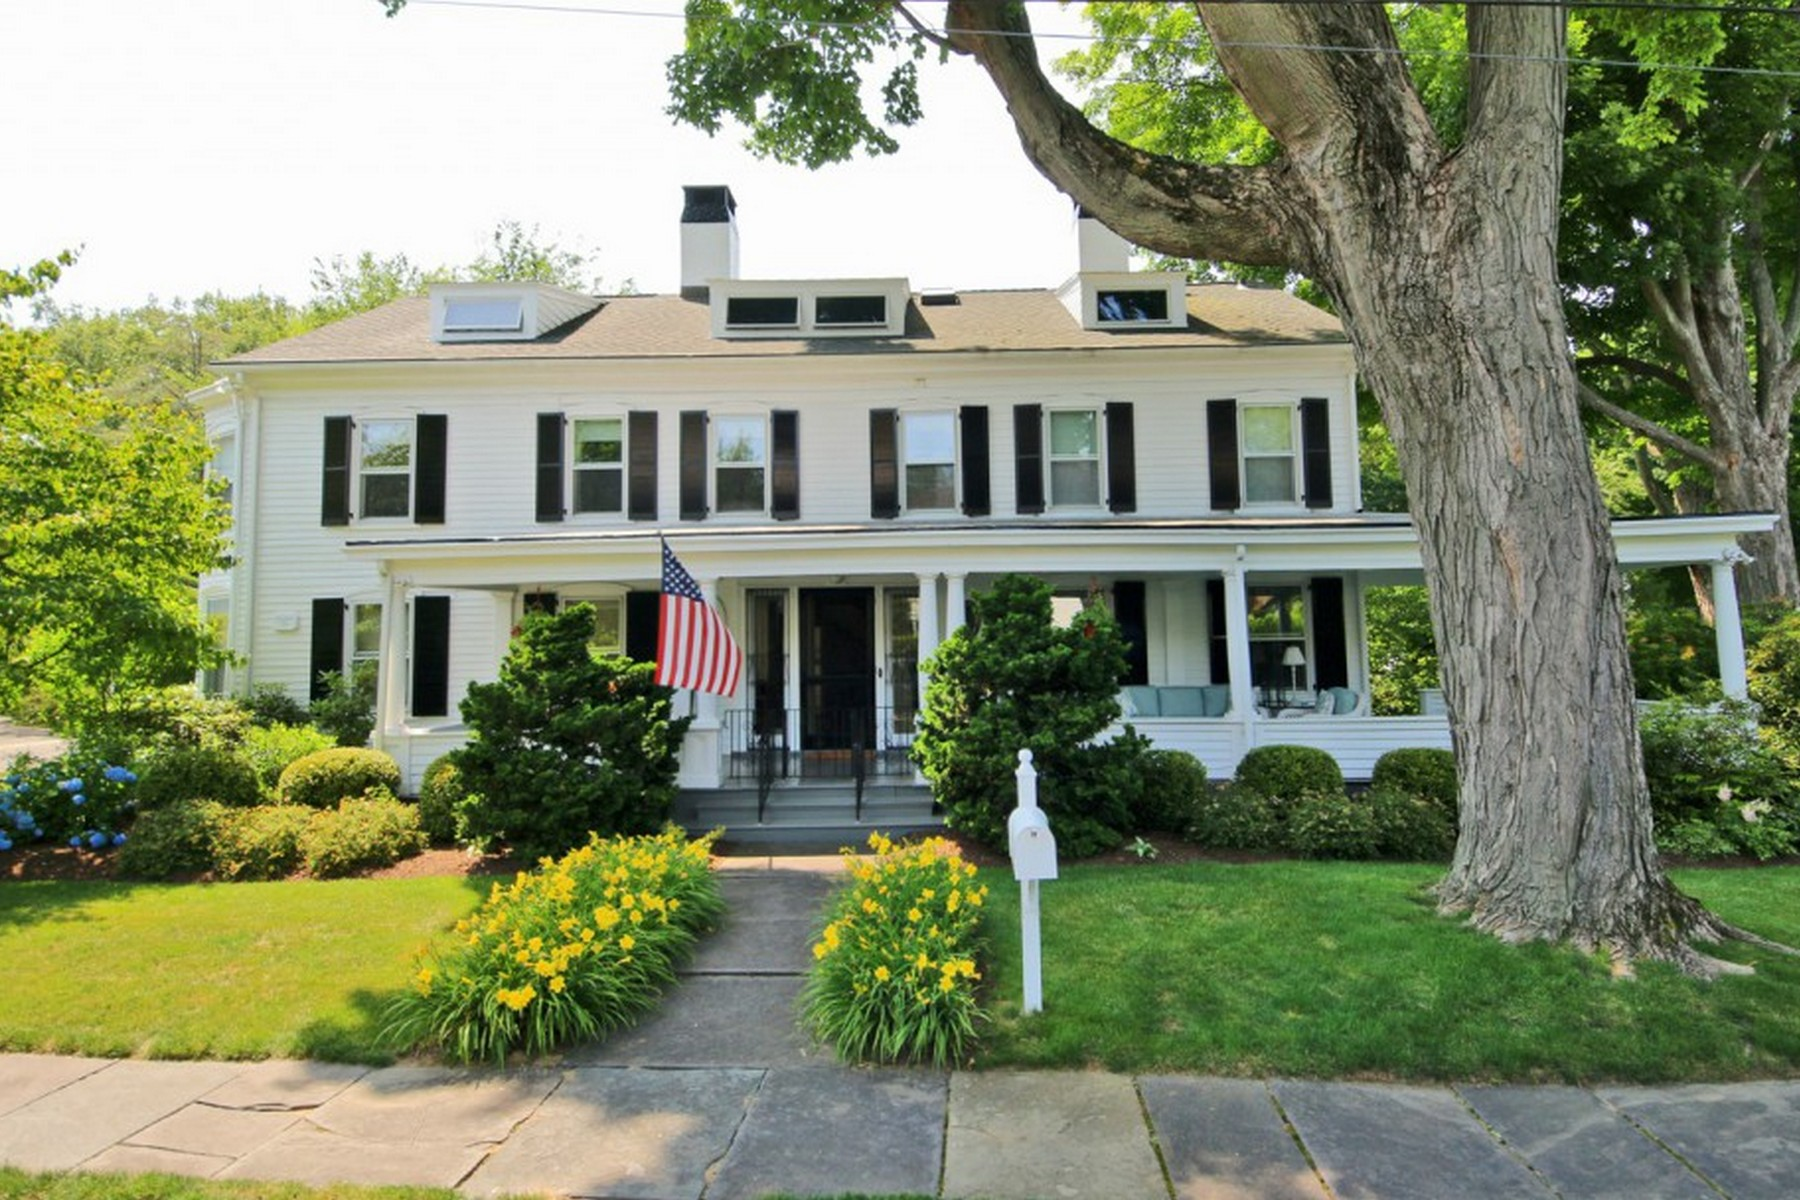 Single Family Home for Sale at PAUL SHEFFIELD HOUSE - SOUTHPORT VILLAGE 72 Willow Street Southport, Fairfield, Connecticut 06890 United States